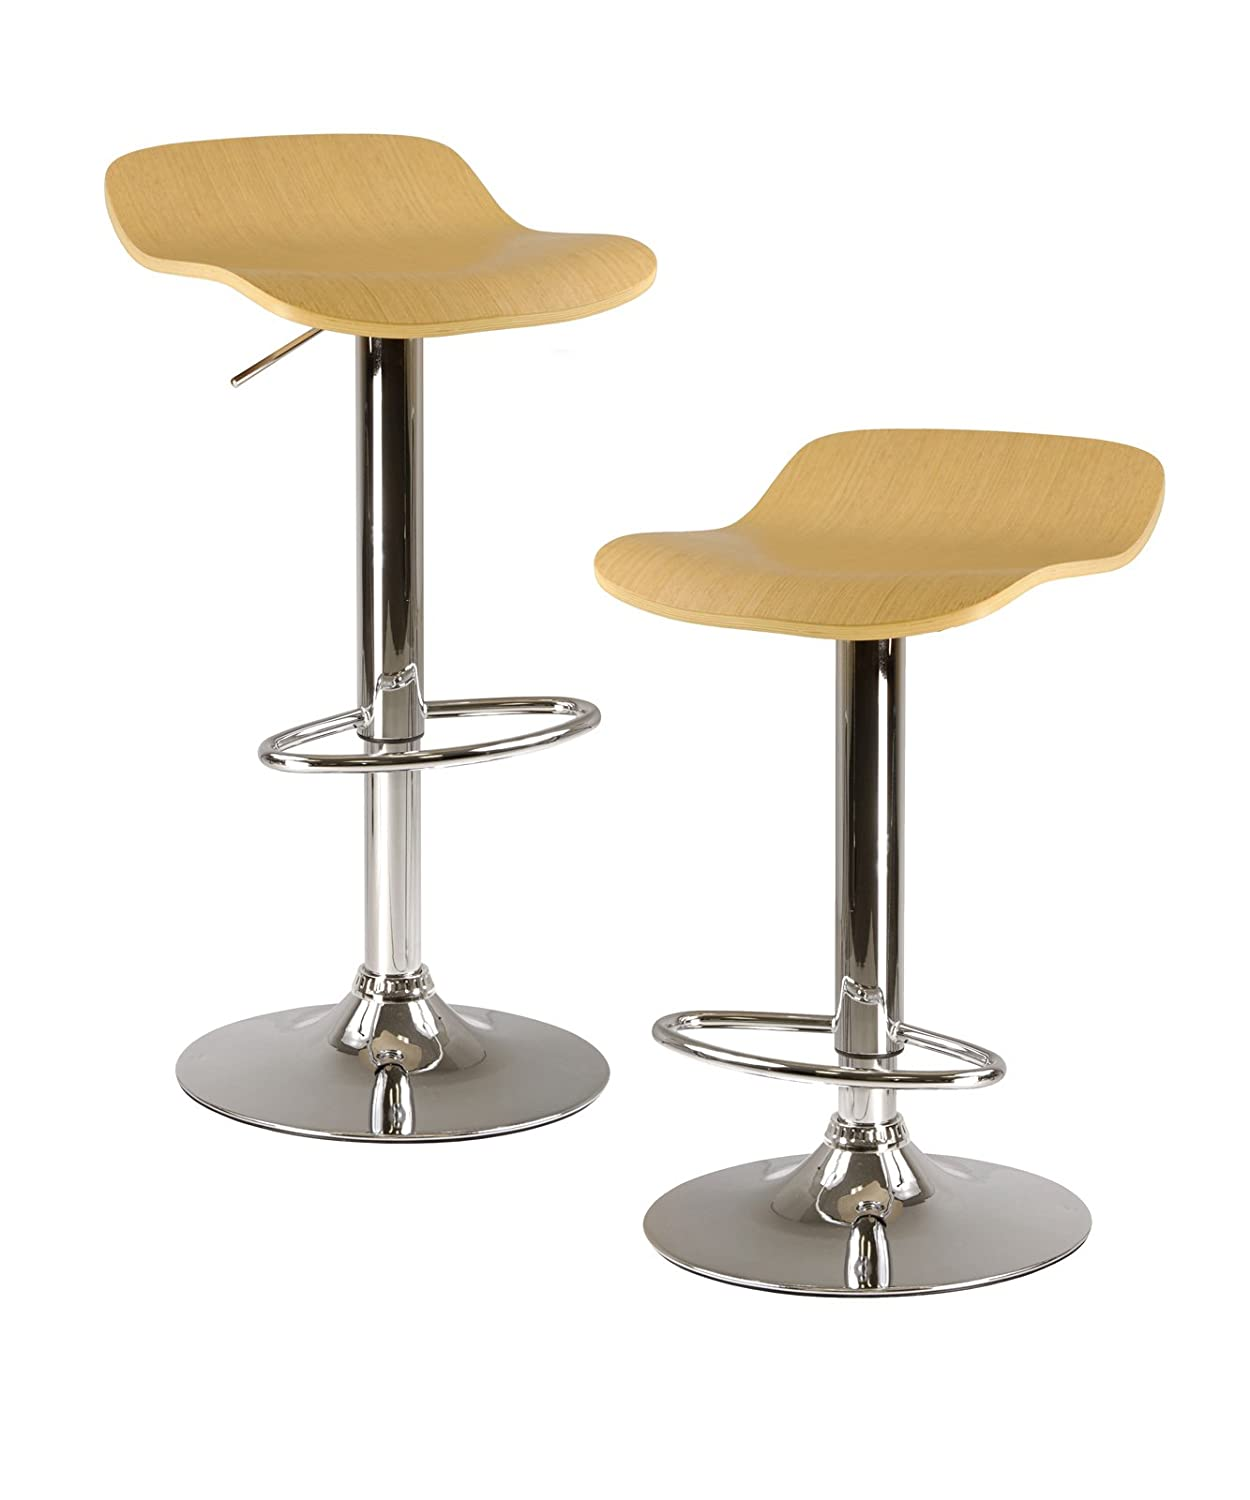 Amazon.com: Winsome Kallie Air Lift Adjustable Stools In Wood Veneer With  Cappuccino Color And Metal Base, Set Of 2: Kitchen U0026 Dining